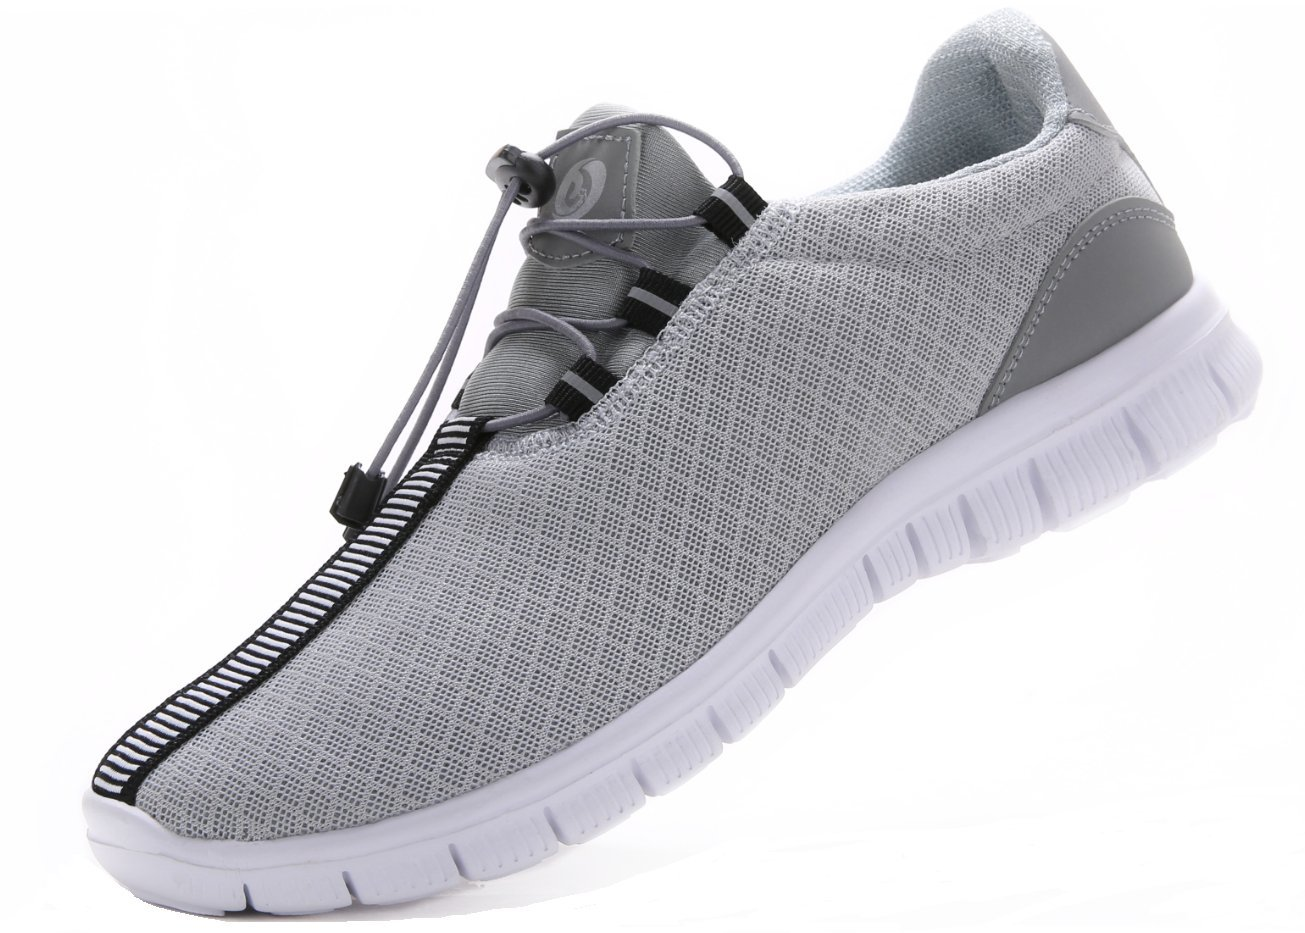 JUAN Men's Running Shoes Fashion Breathable Sneakers Mesh Soft Sole Casual Athletic Lightweight (9.5US/43EU,Men, Grey) by JUAN